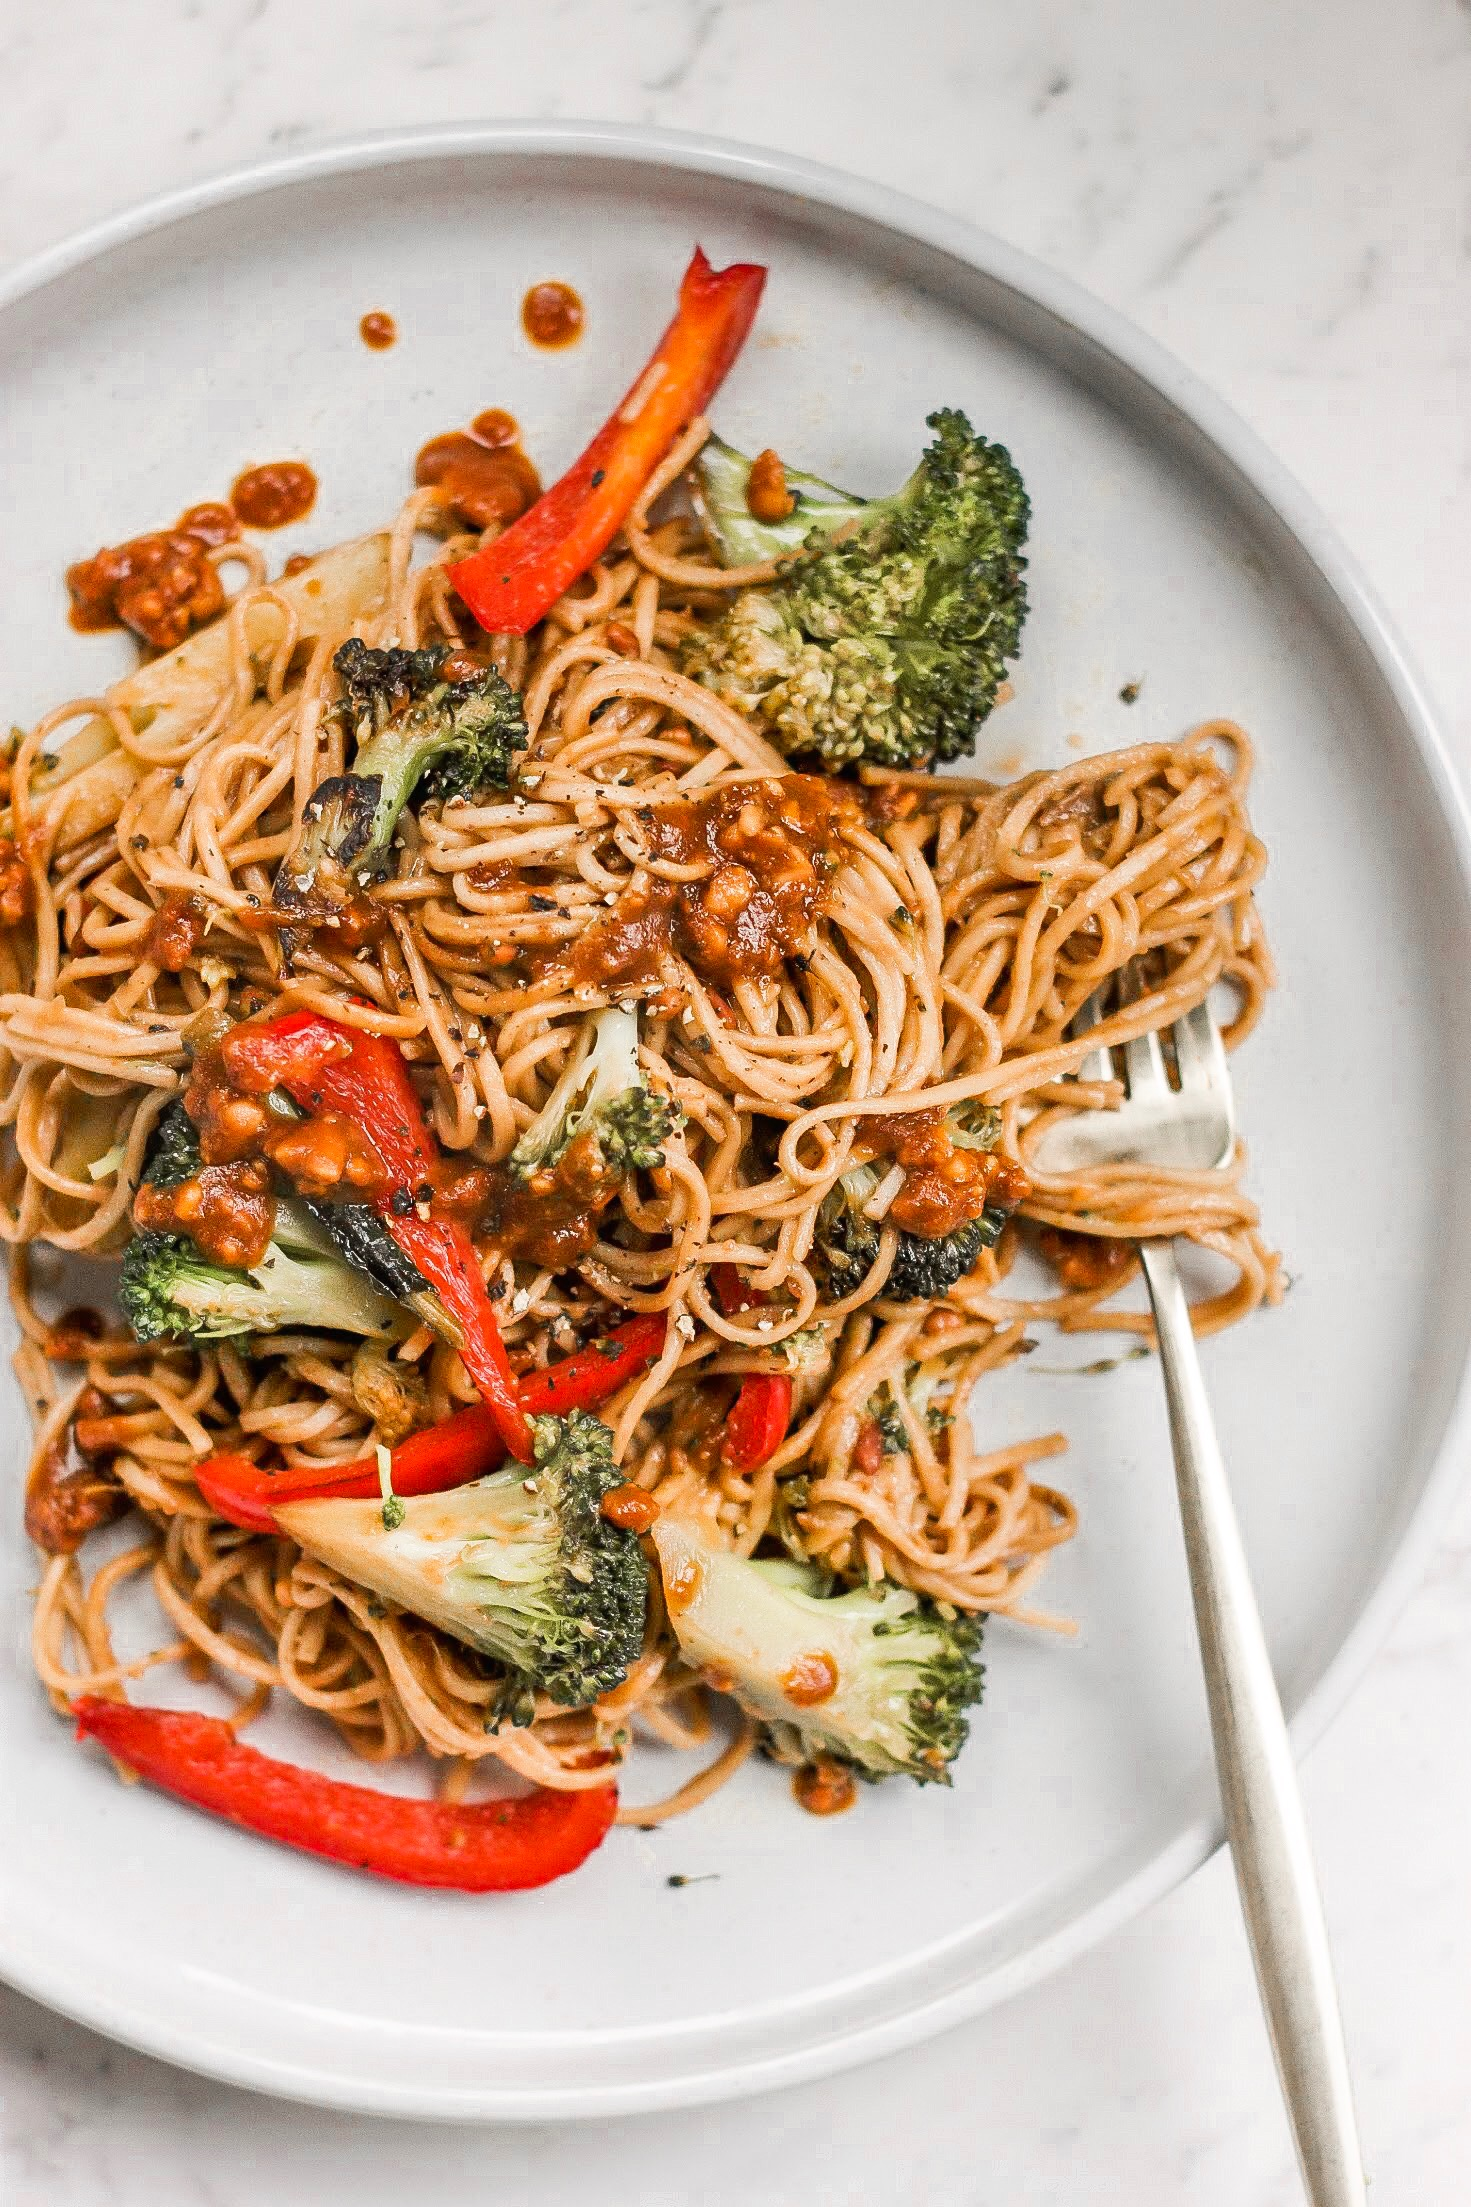 Recipe: Bell Pepper & Broccoli Soba Noodle Salad (V + GF)